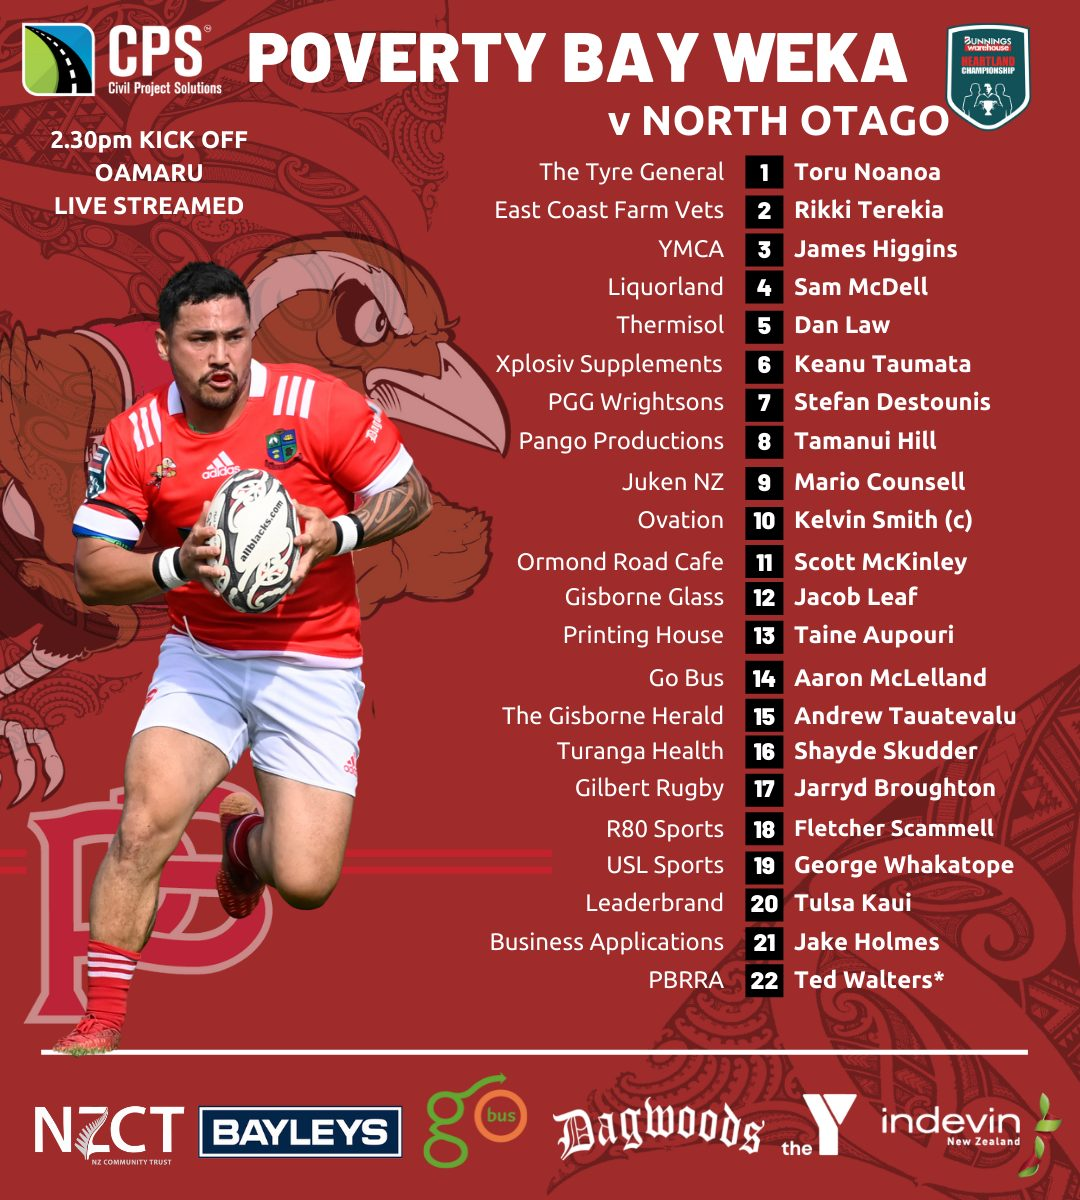 CPS Poverty Bay Wekas to play North Otago named